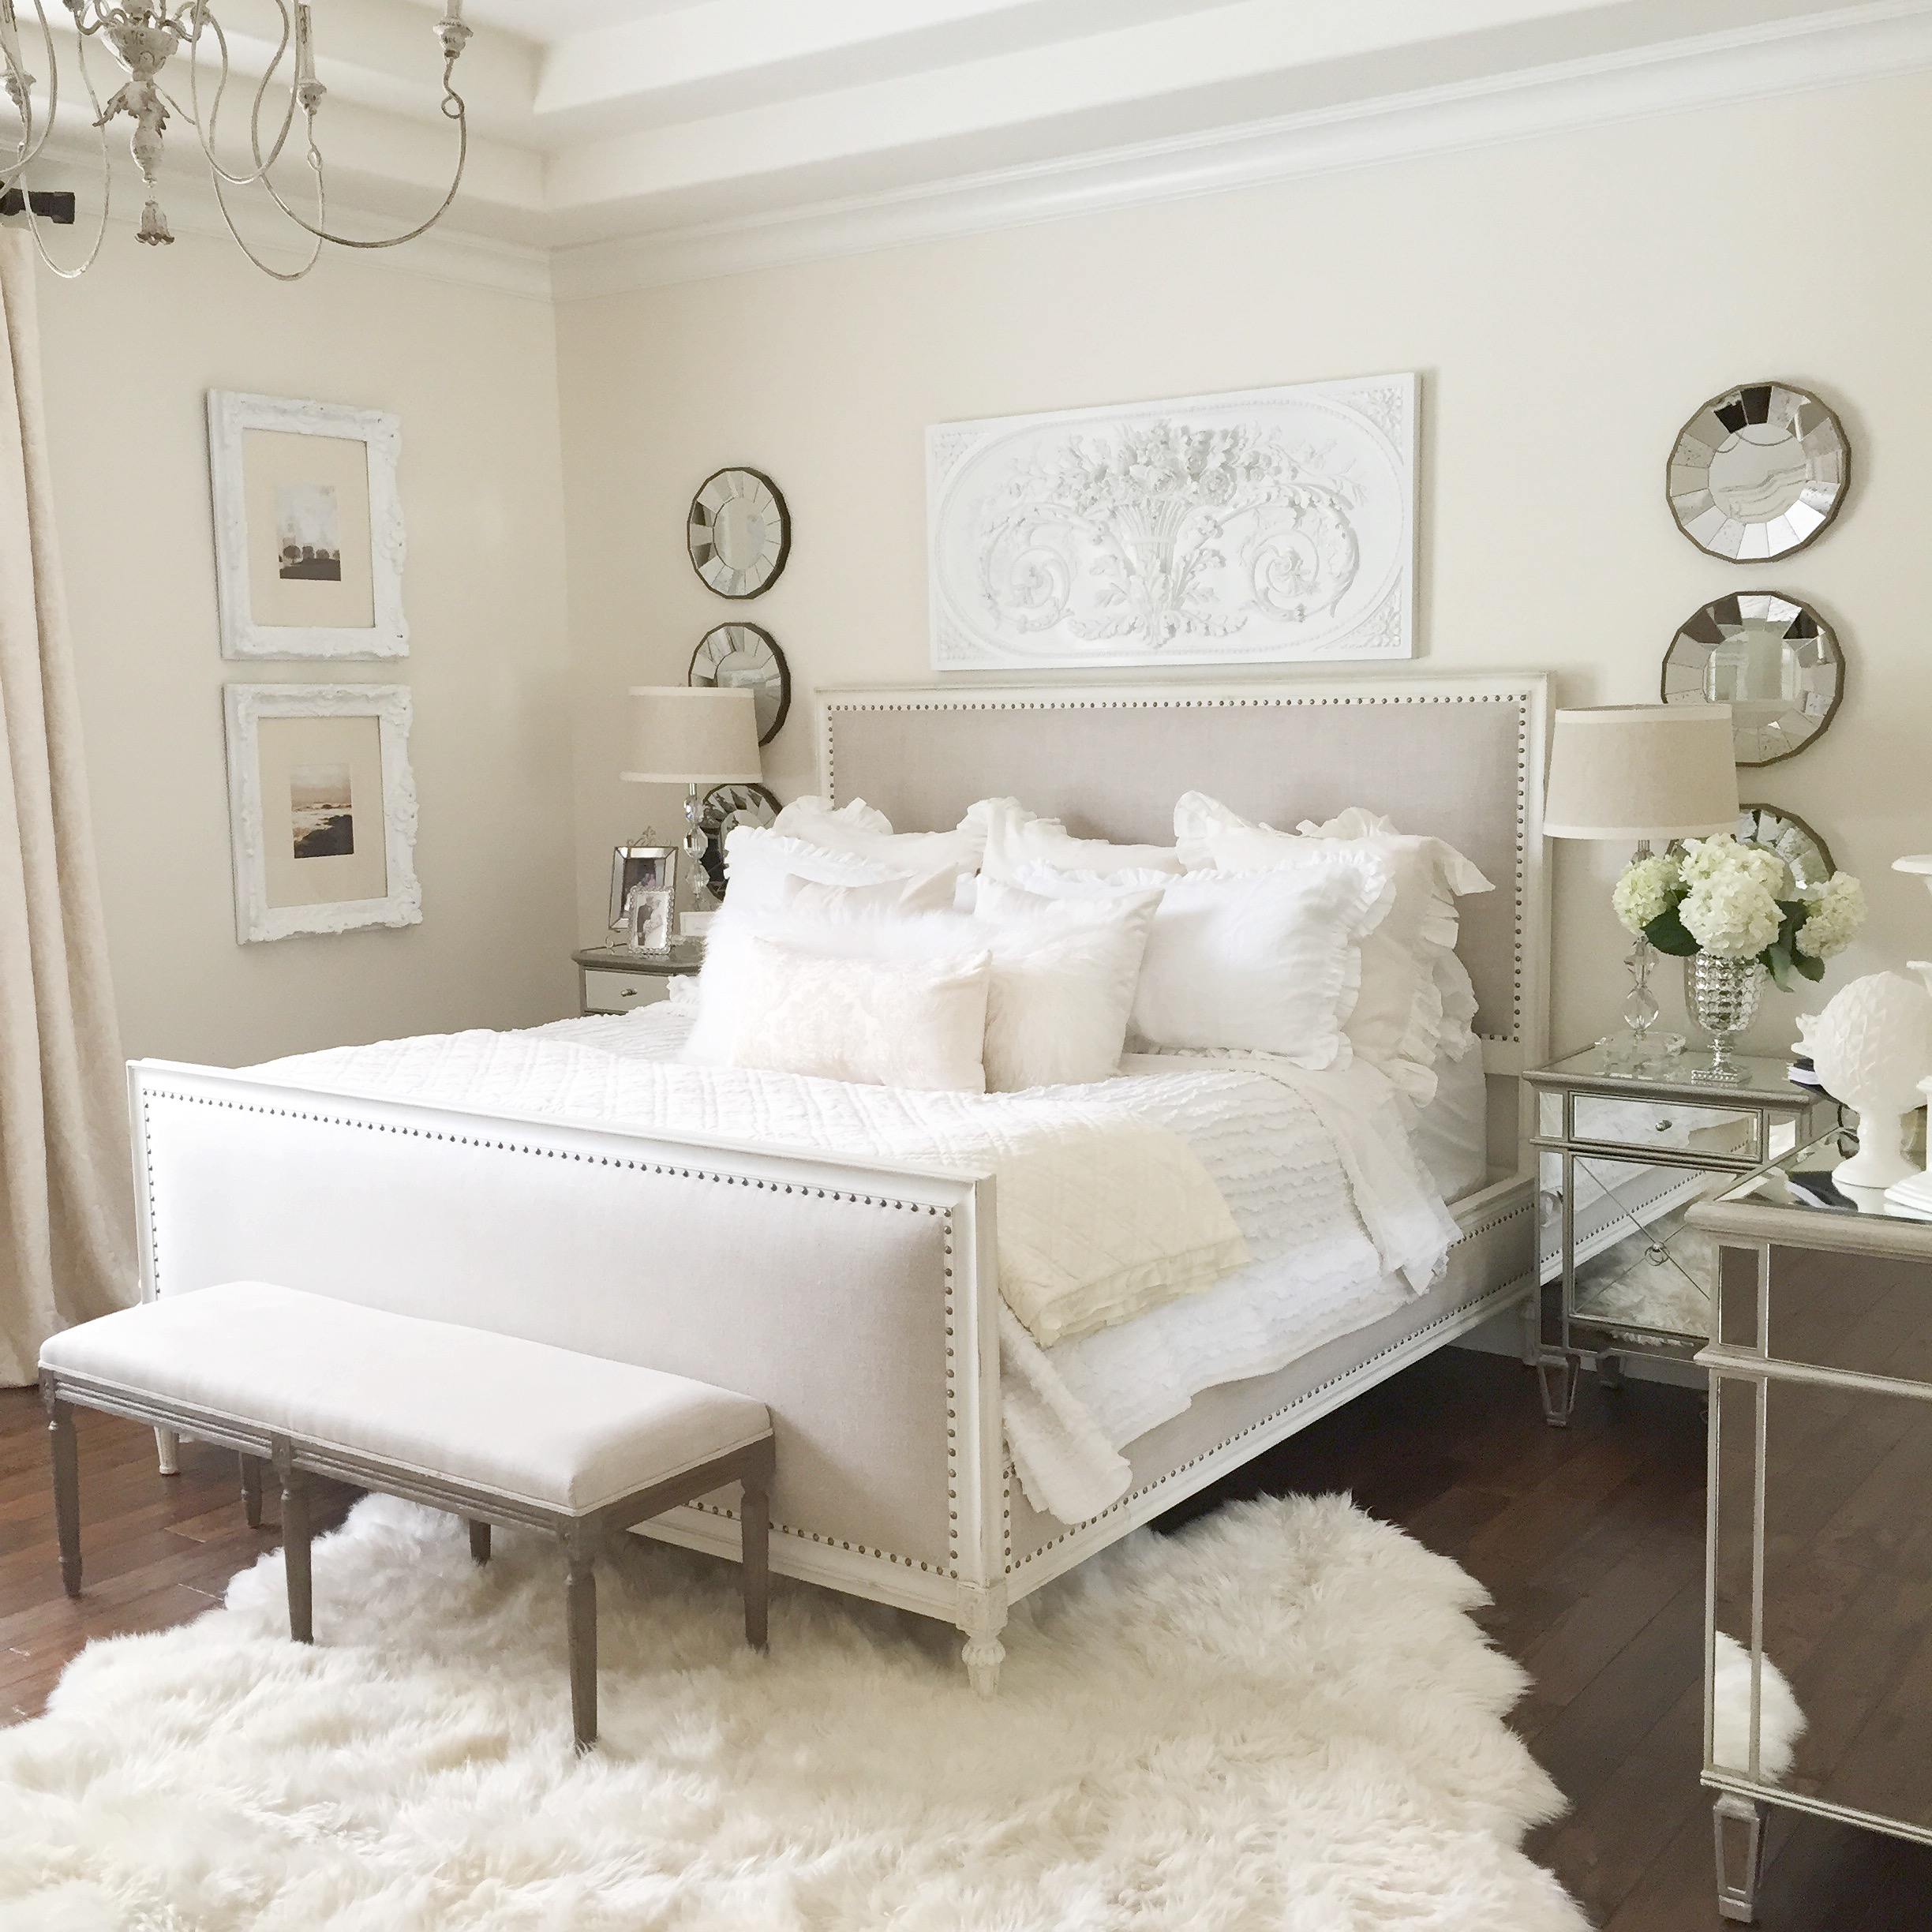 Restoration Hardware Bedroom Paint Ideas Pict Neutral Easy Master Bedroom With Restoration Hardware Bed White Wall